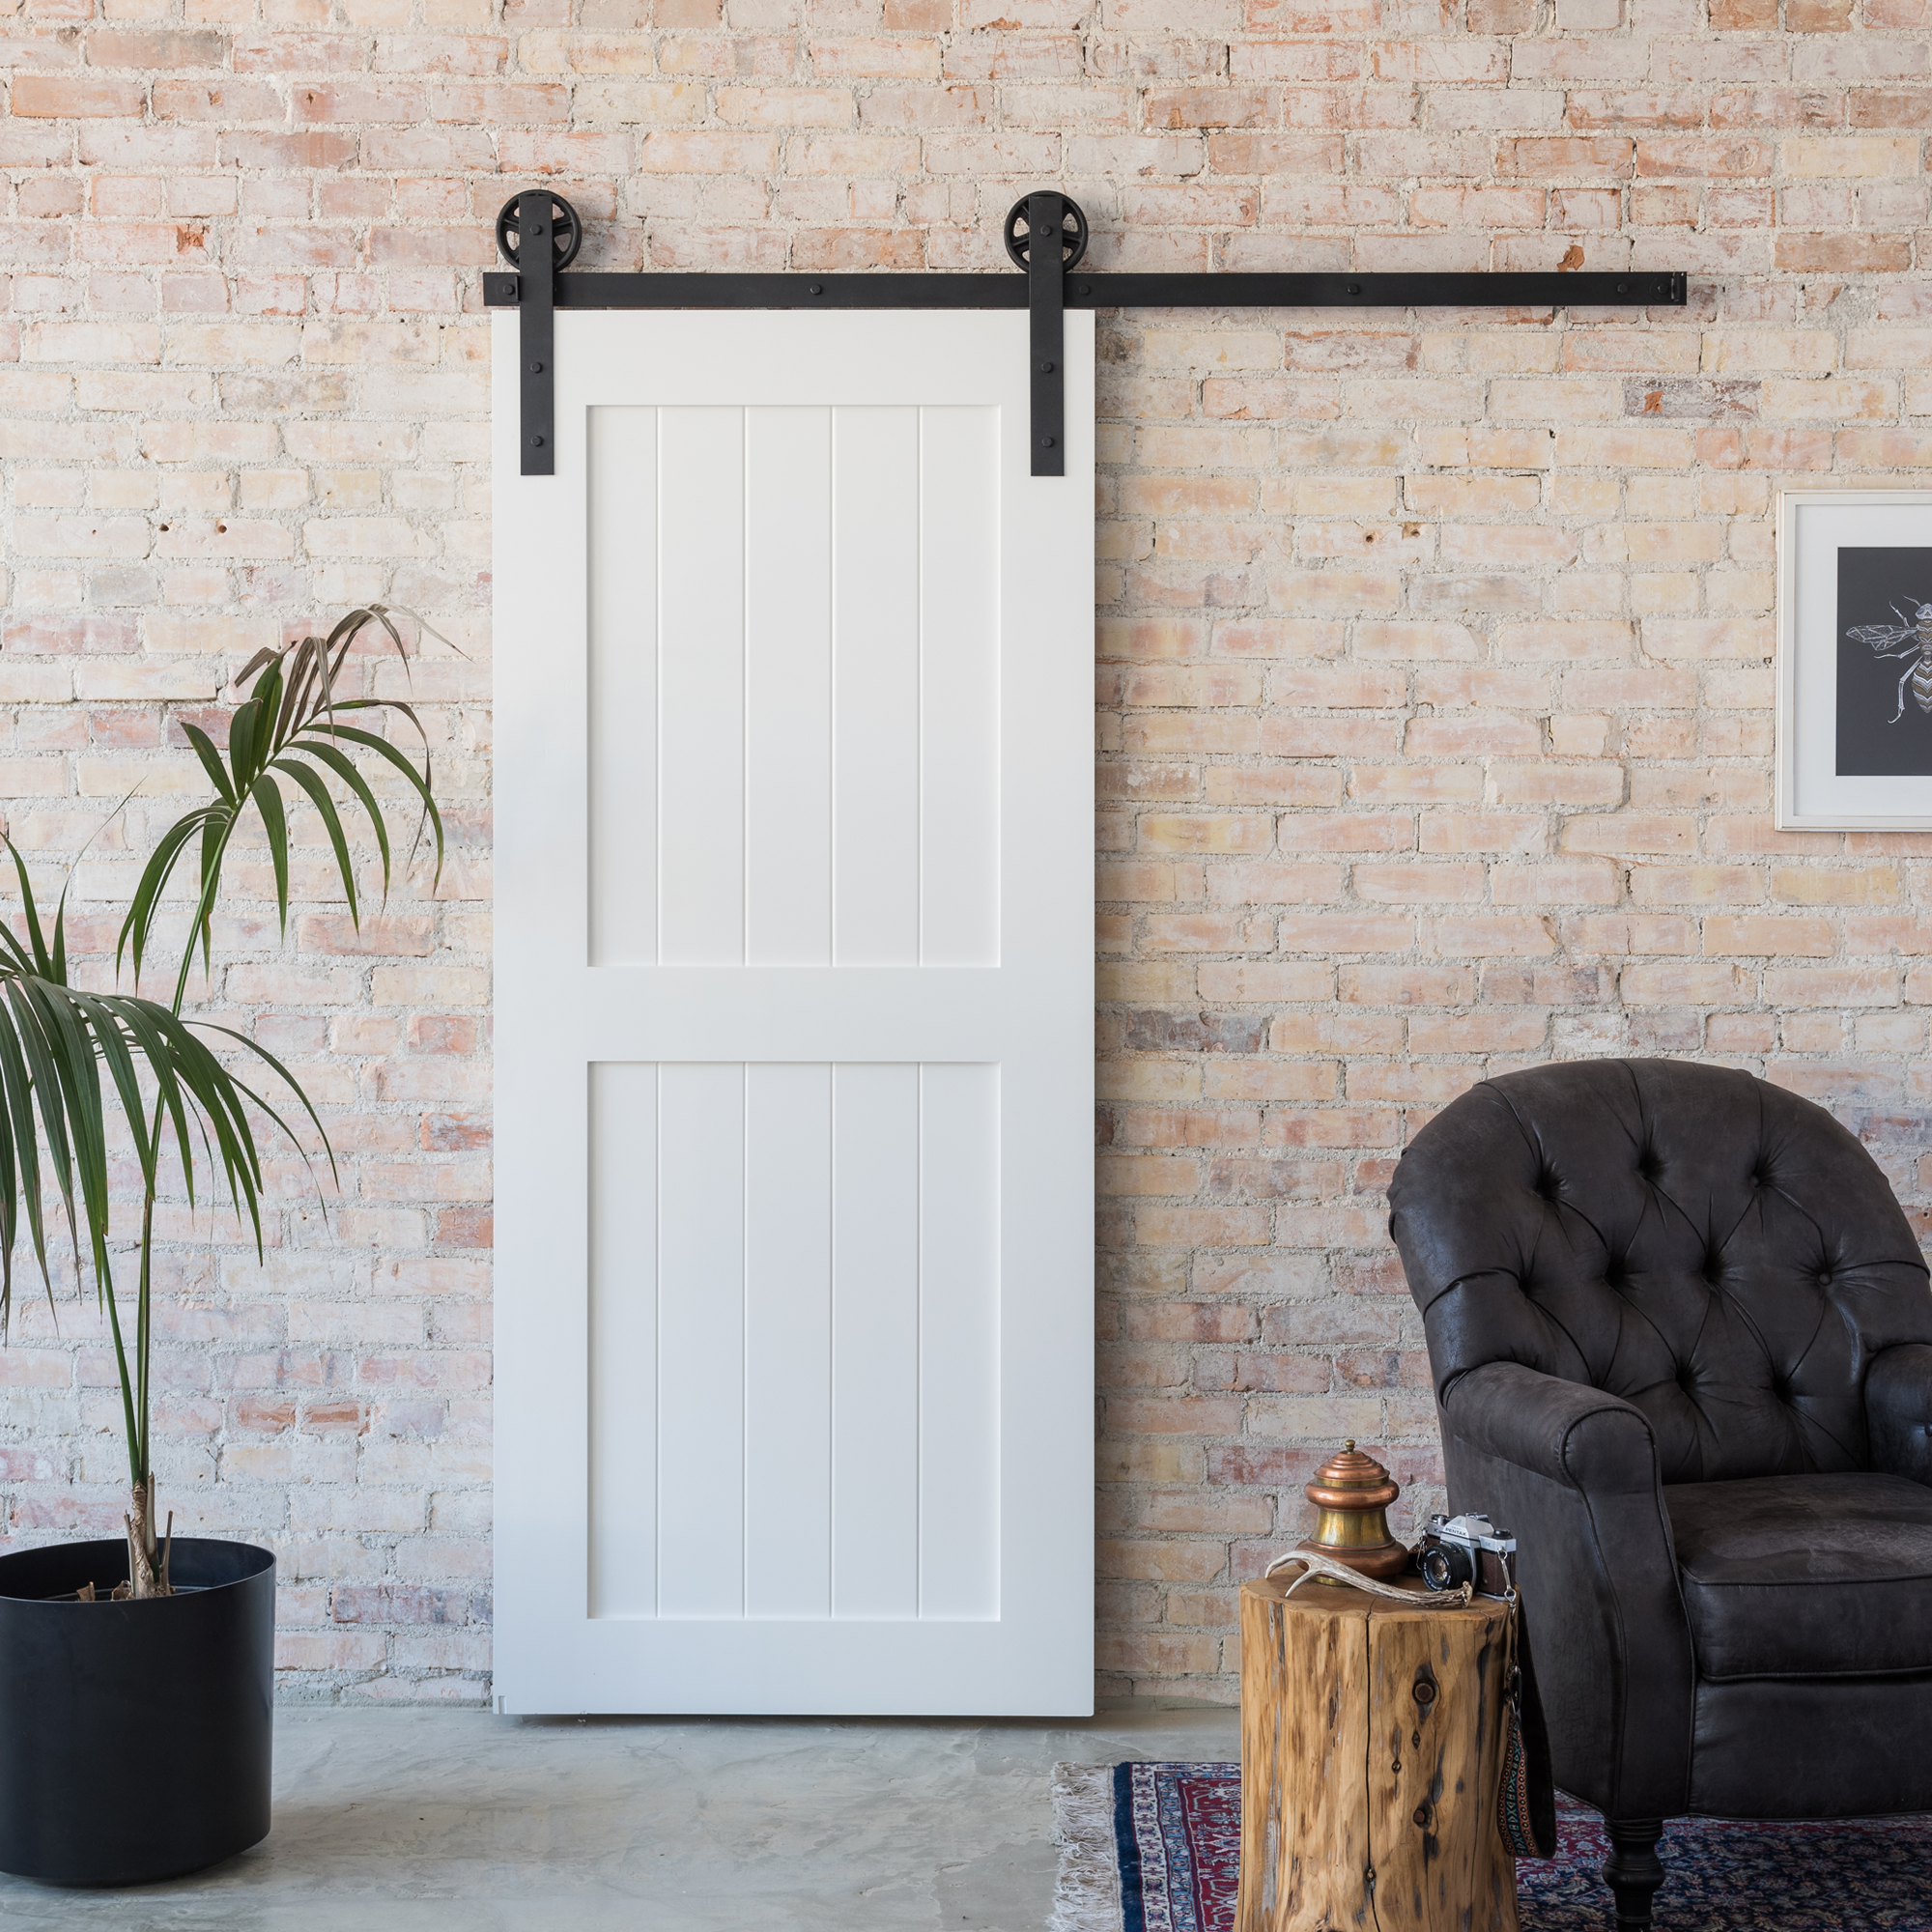 The 2 Panel Barn Door is simple and elegant The sharp edges and